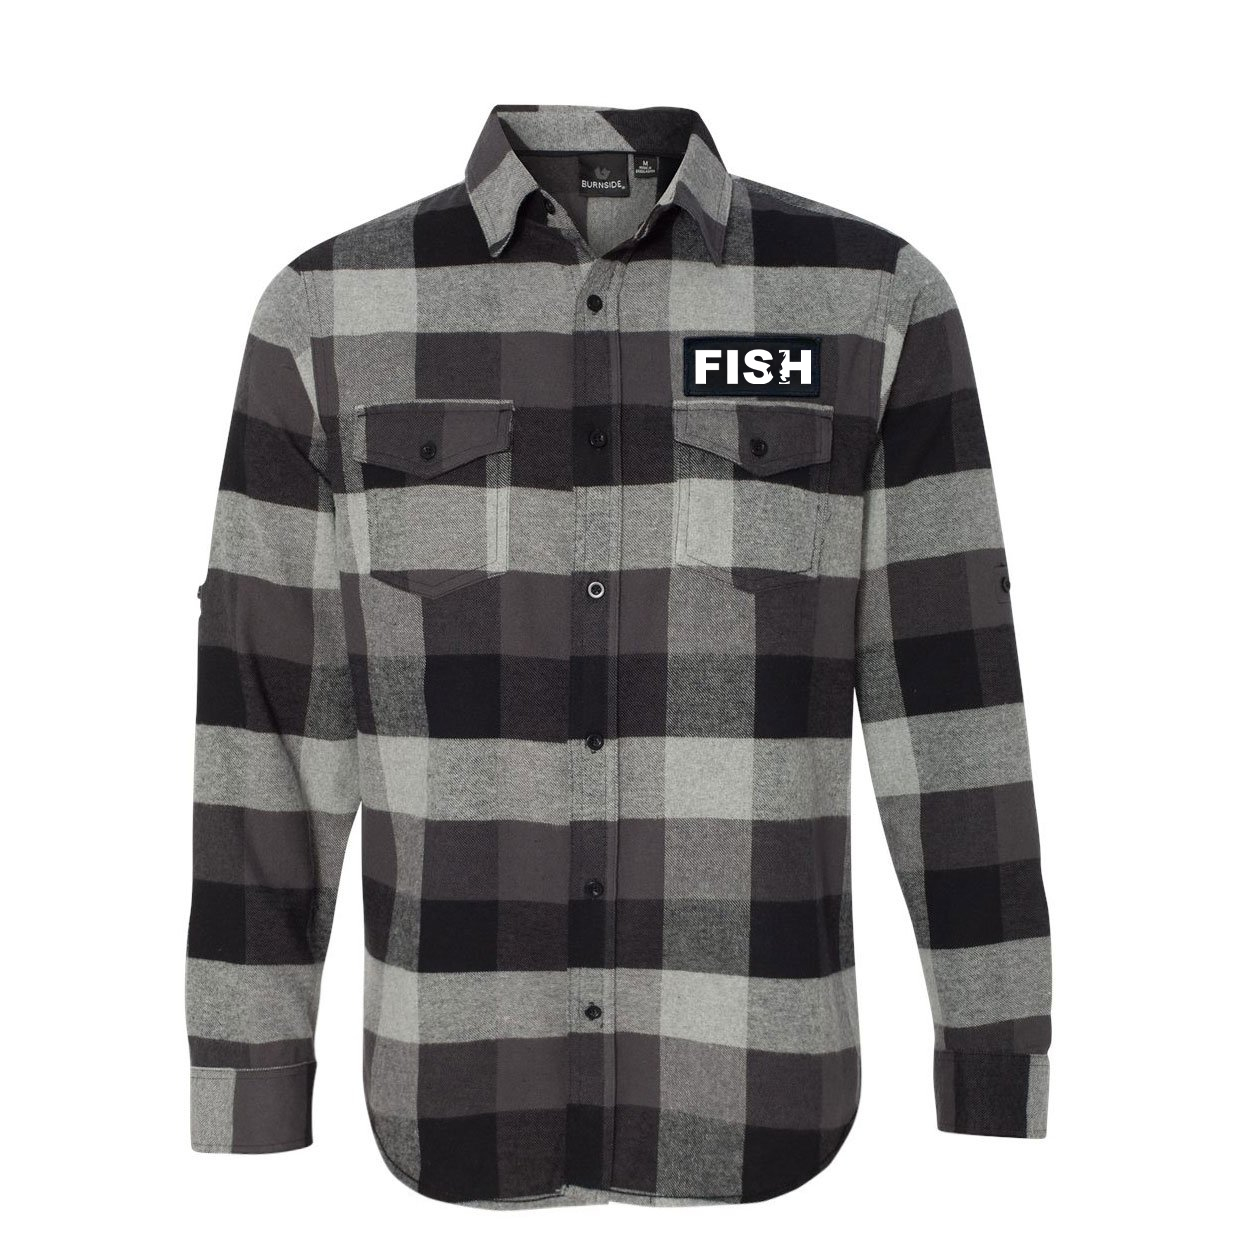 Fish Catch Logo Classic Unisex Long Sleeve Woven Patch Flannel Shirt Black/Gray (White Logo)